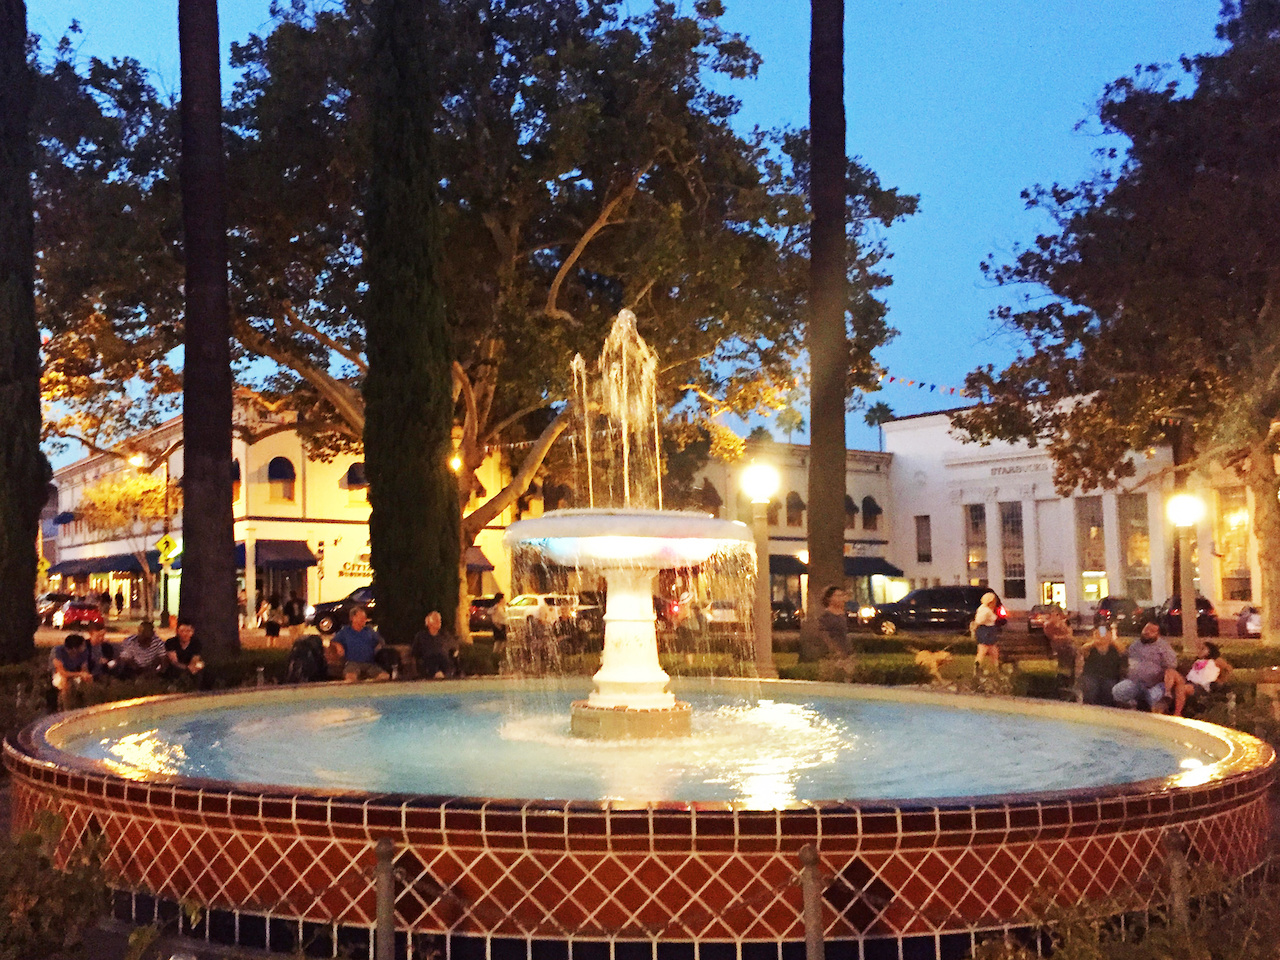 The fountain in Old Towne Orange is a gathering place for college students and residents alike, who can wander from one of the coffee shops or restaurants on the streets just off the plaza.